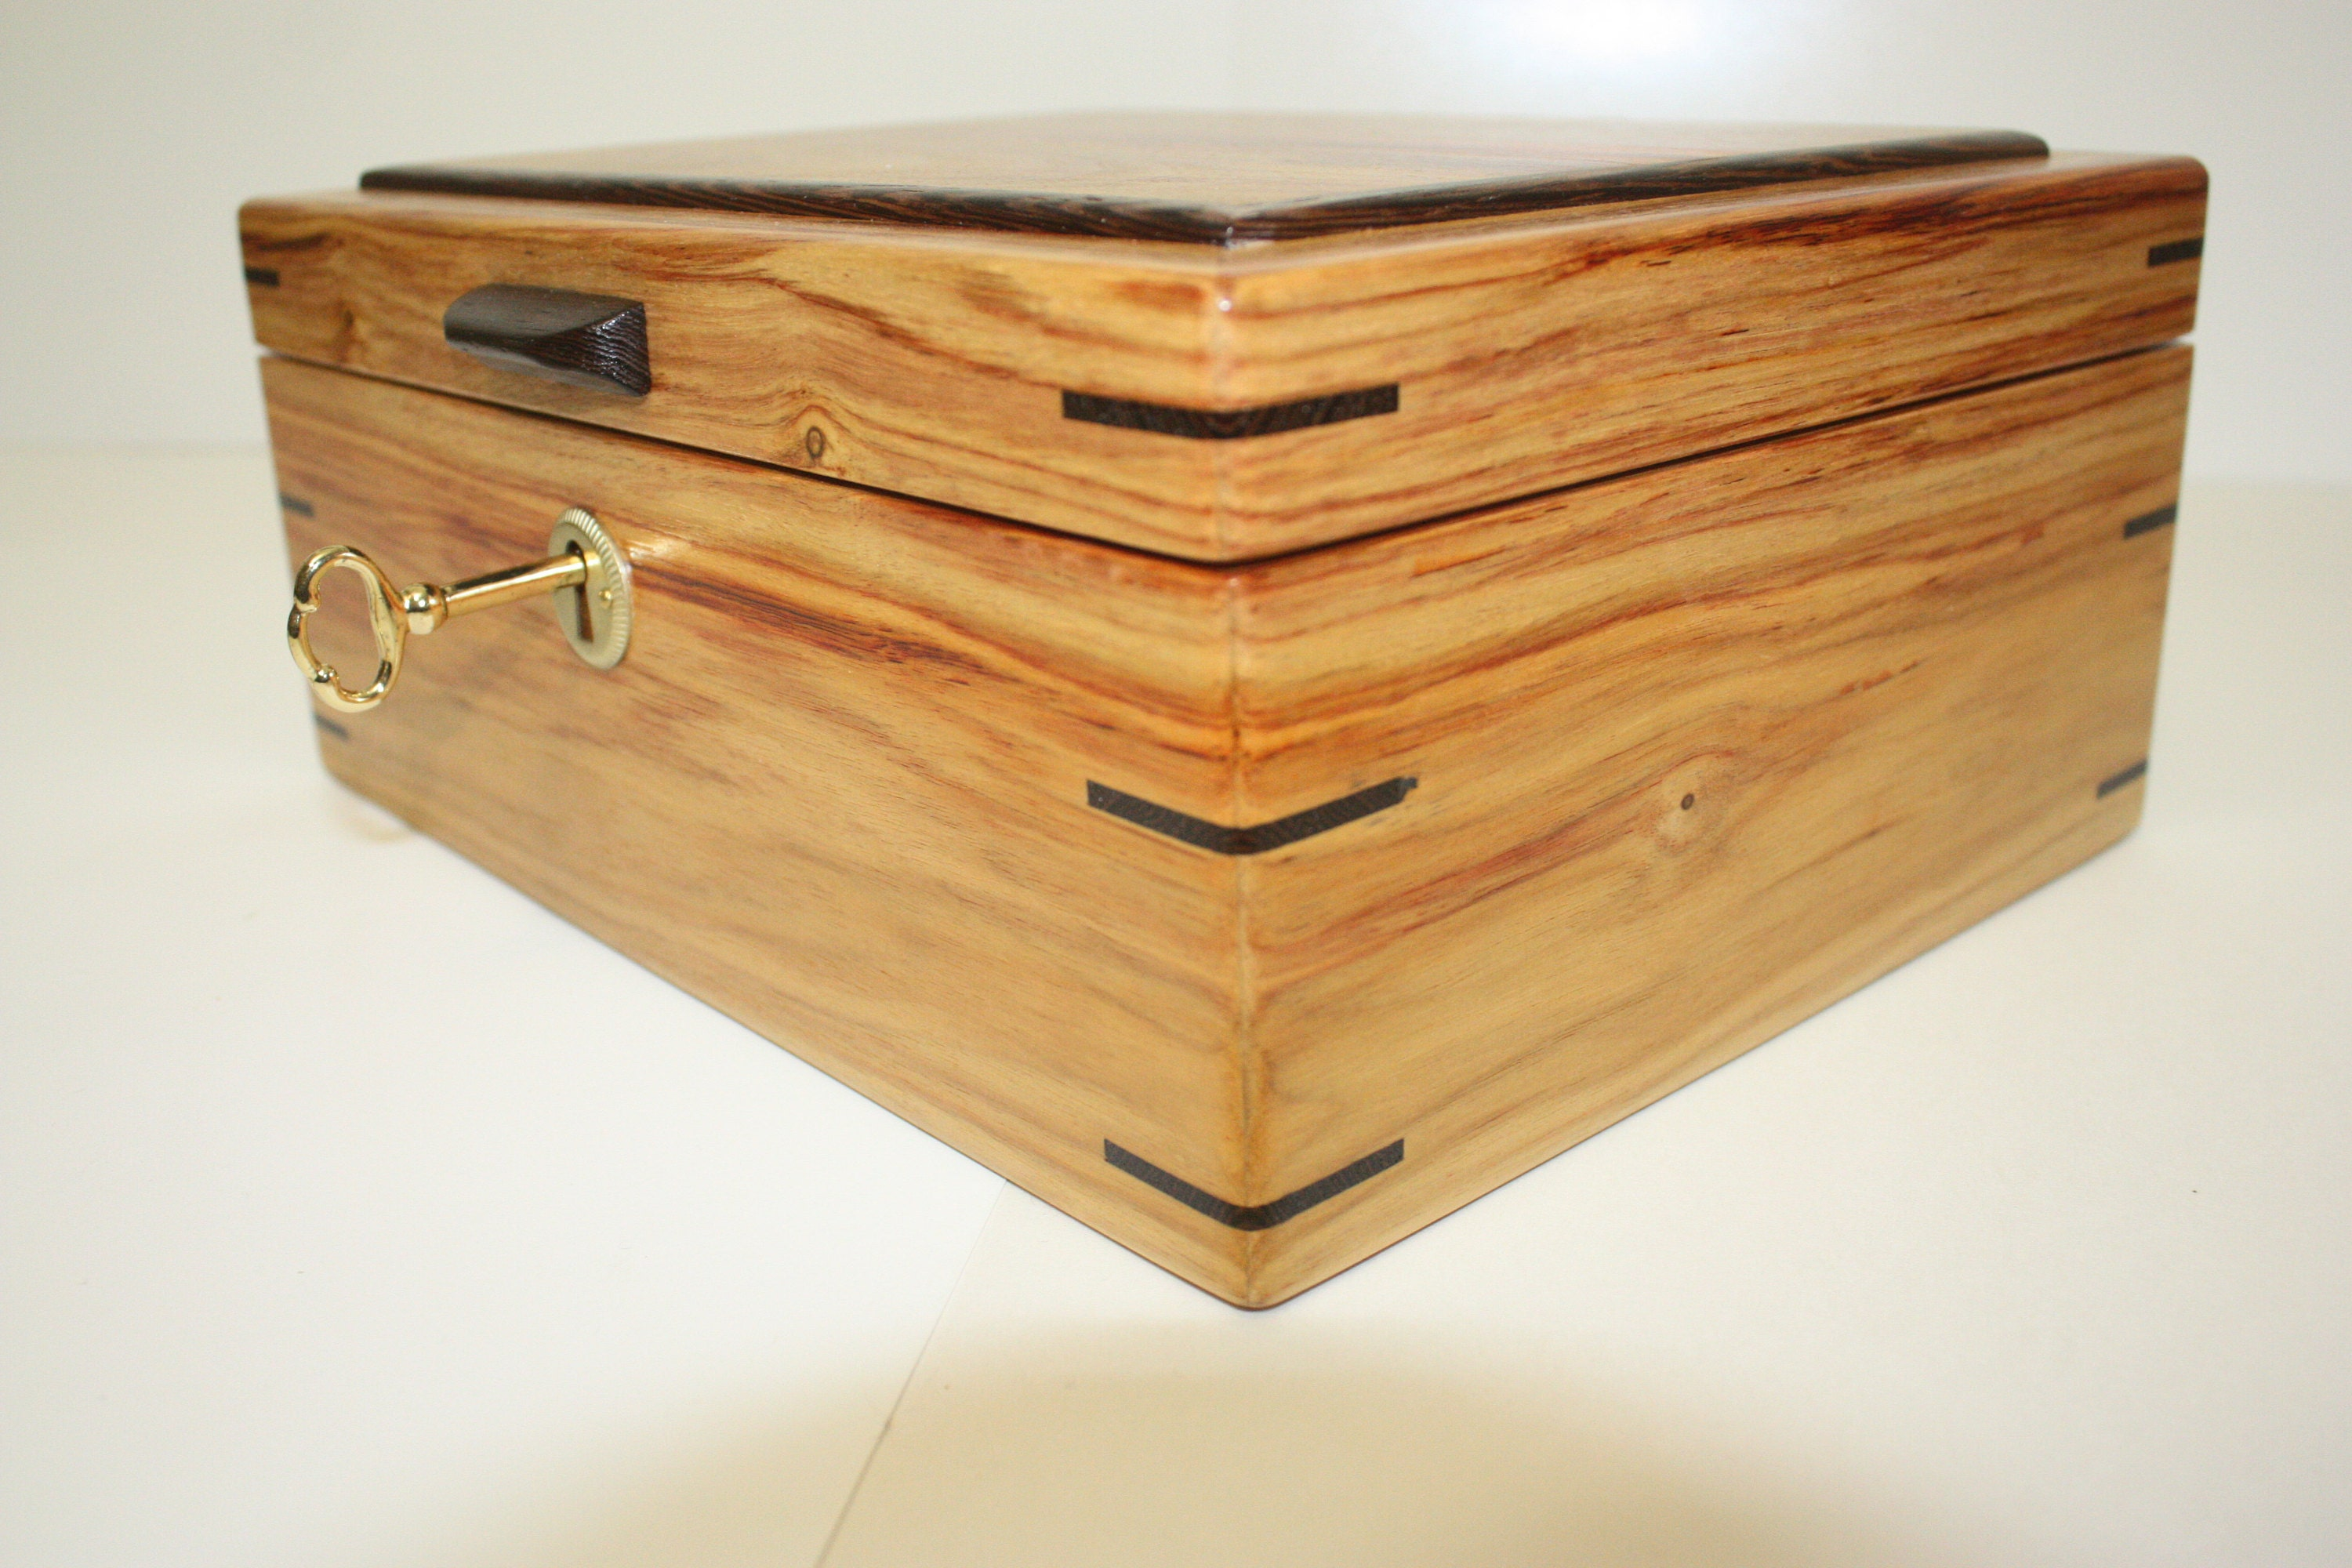 Handmade Locking Canarywood Wooden Box